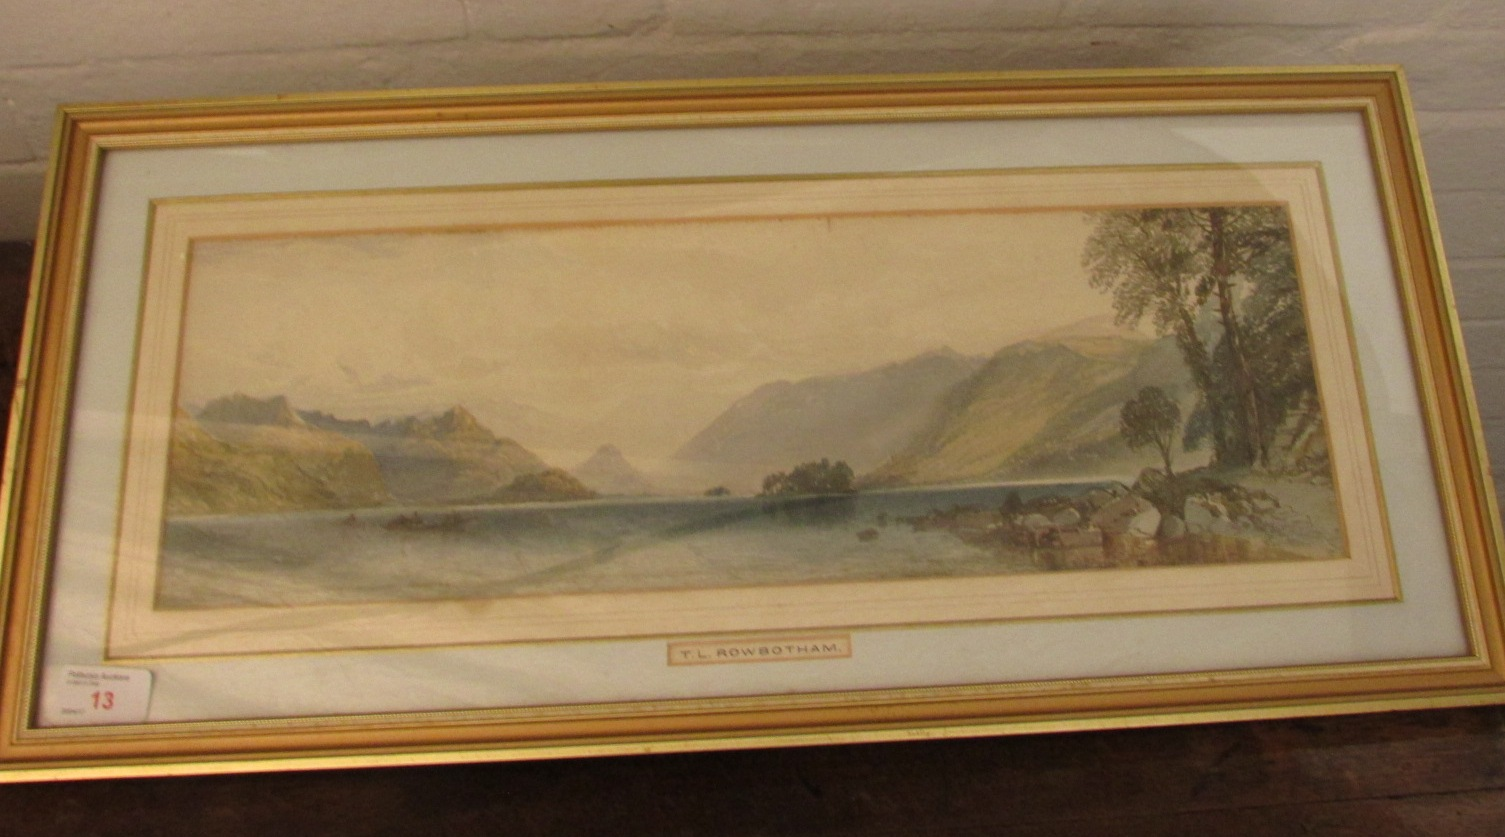 Lot 13 - Lake district water with boats, watercolour, (16.5cm x 50cm), indistinct signature lower right,